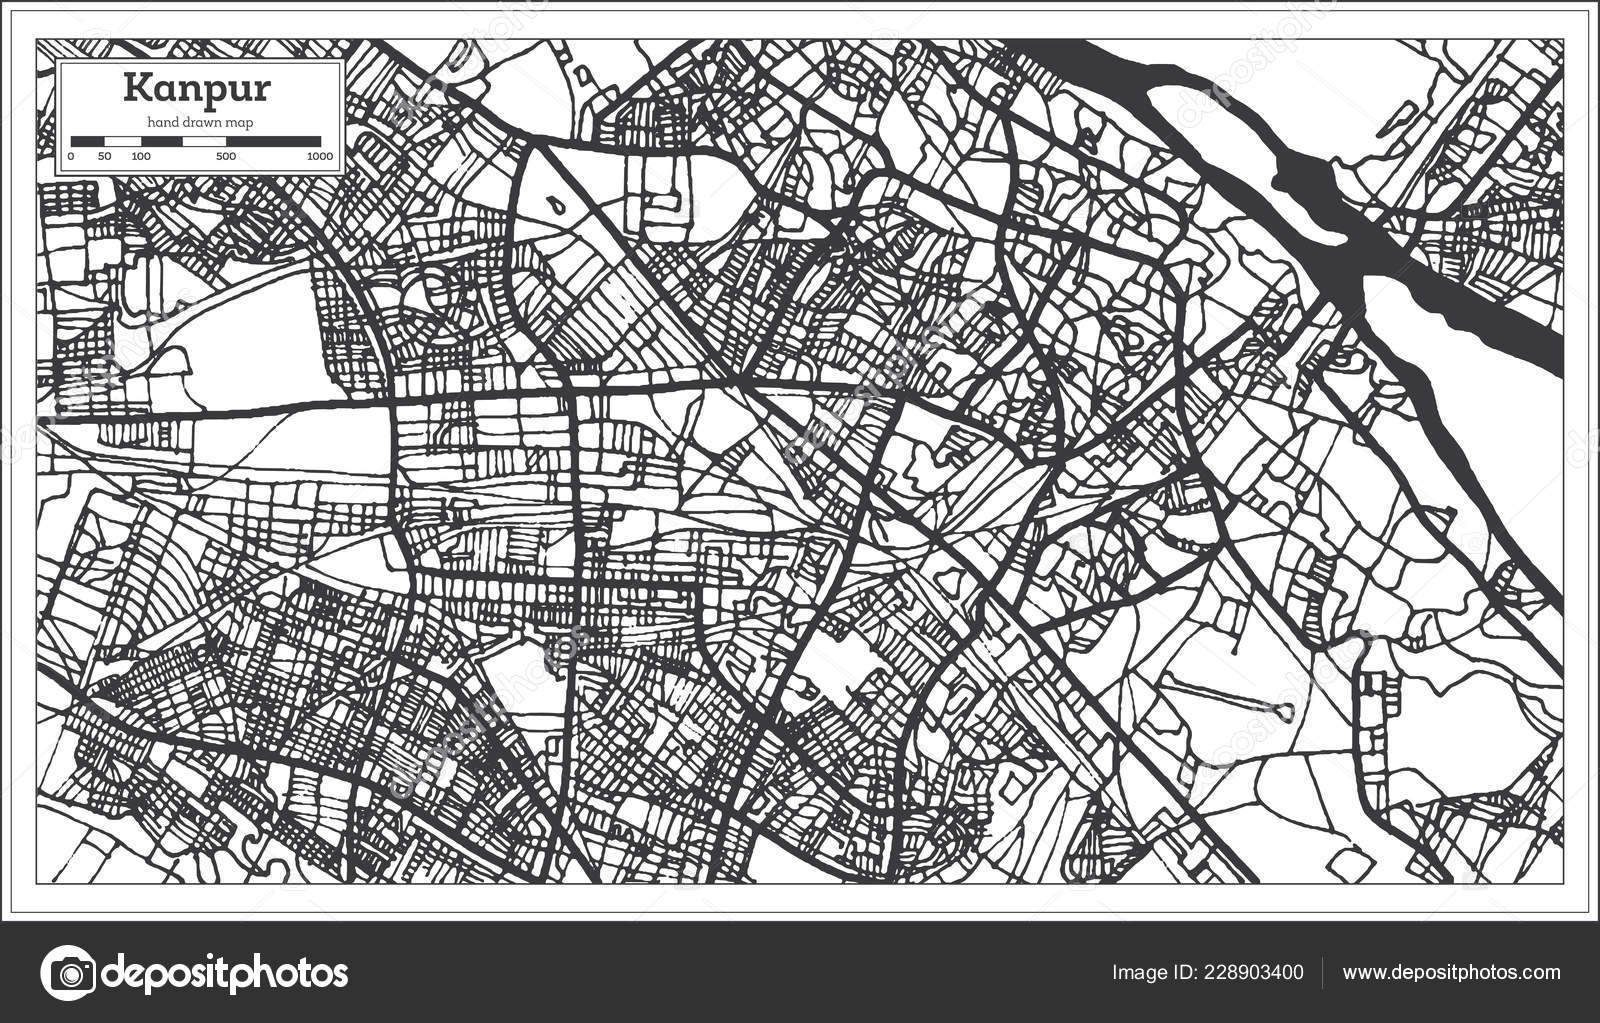 Kanpur India City Map Retro Style Outline Map Vector Illustration